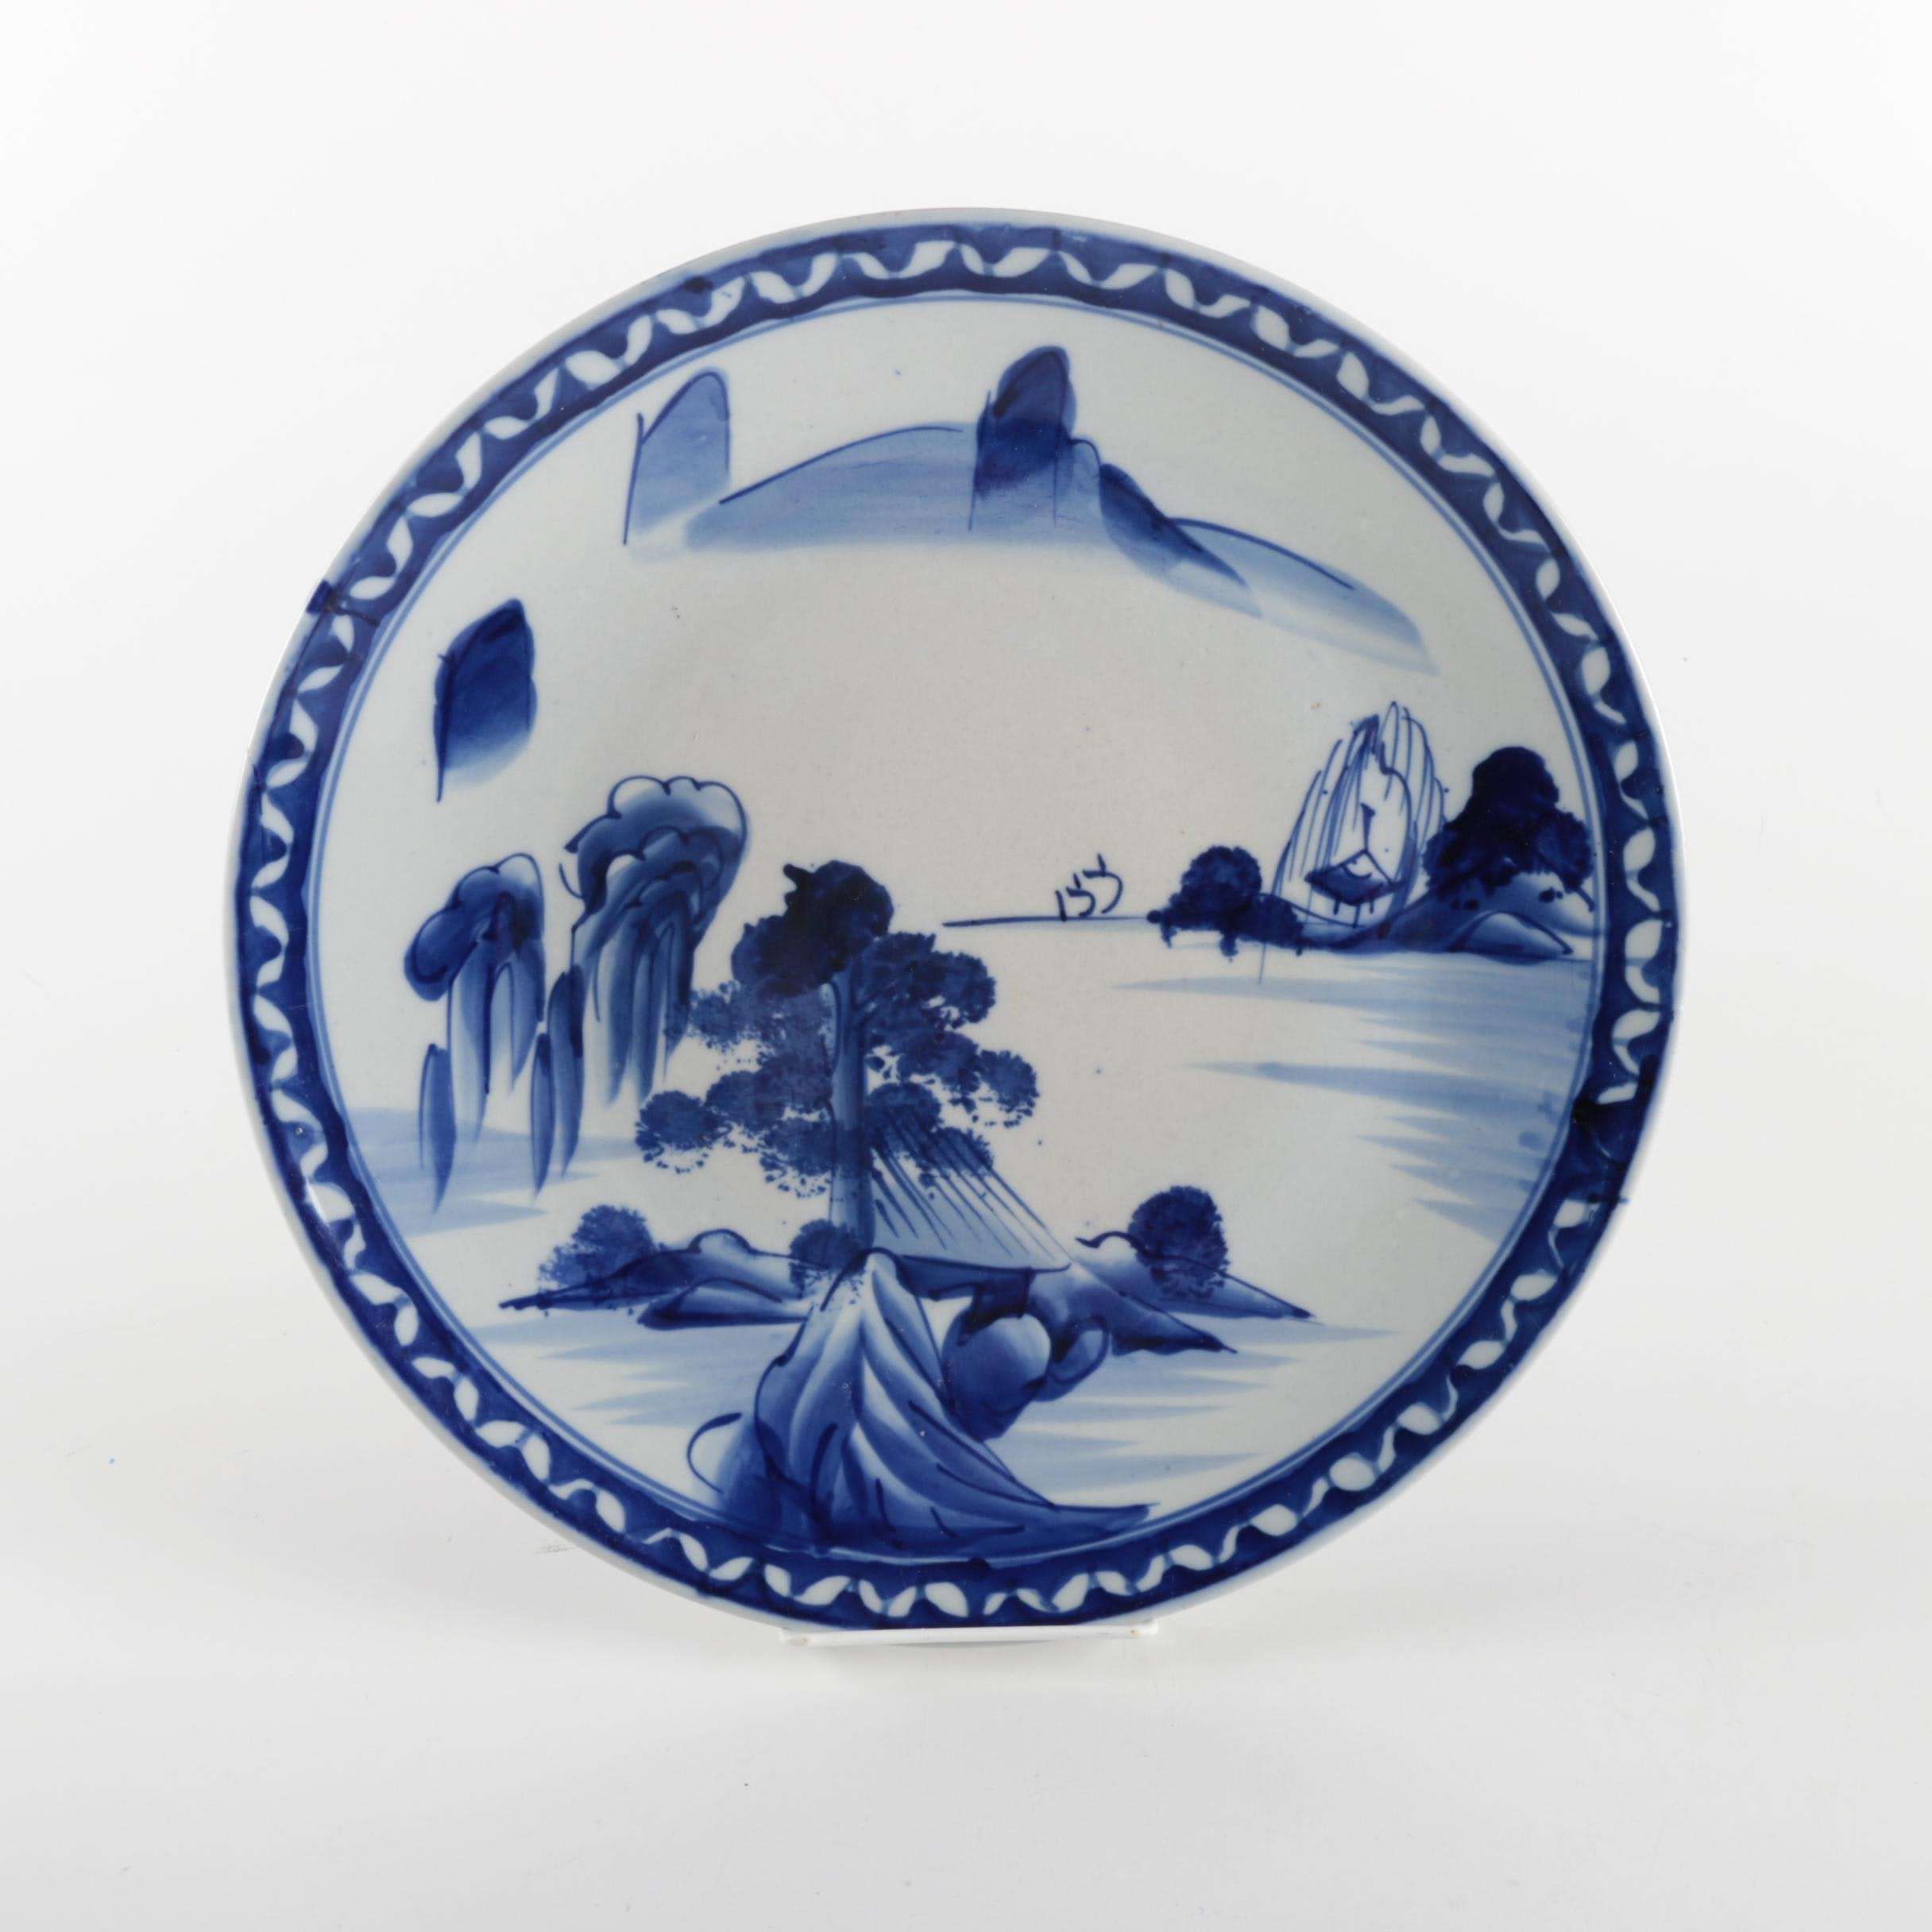 East Asian Blue and White Plate